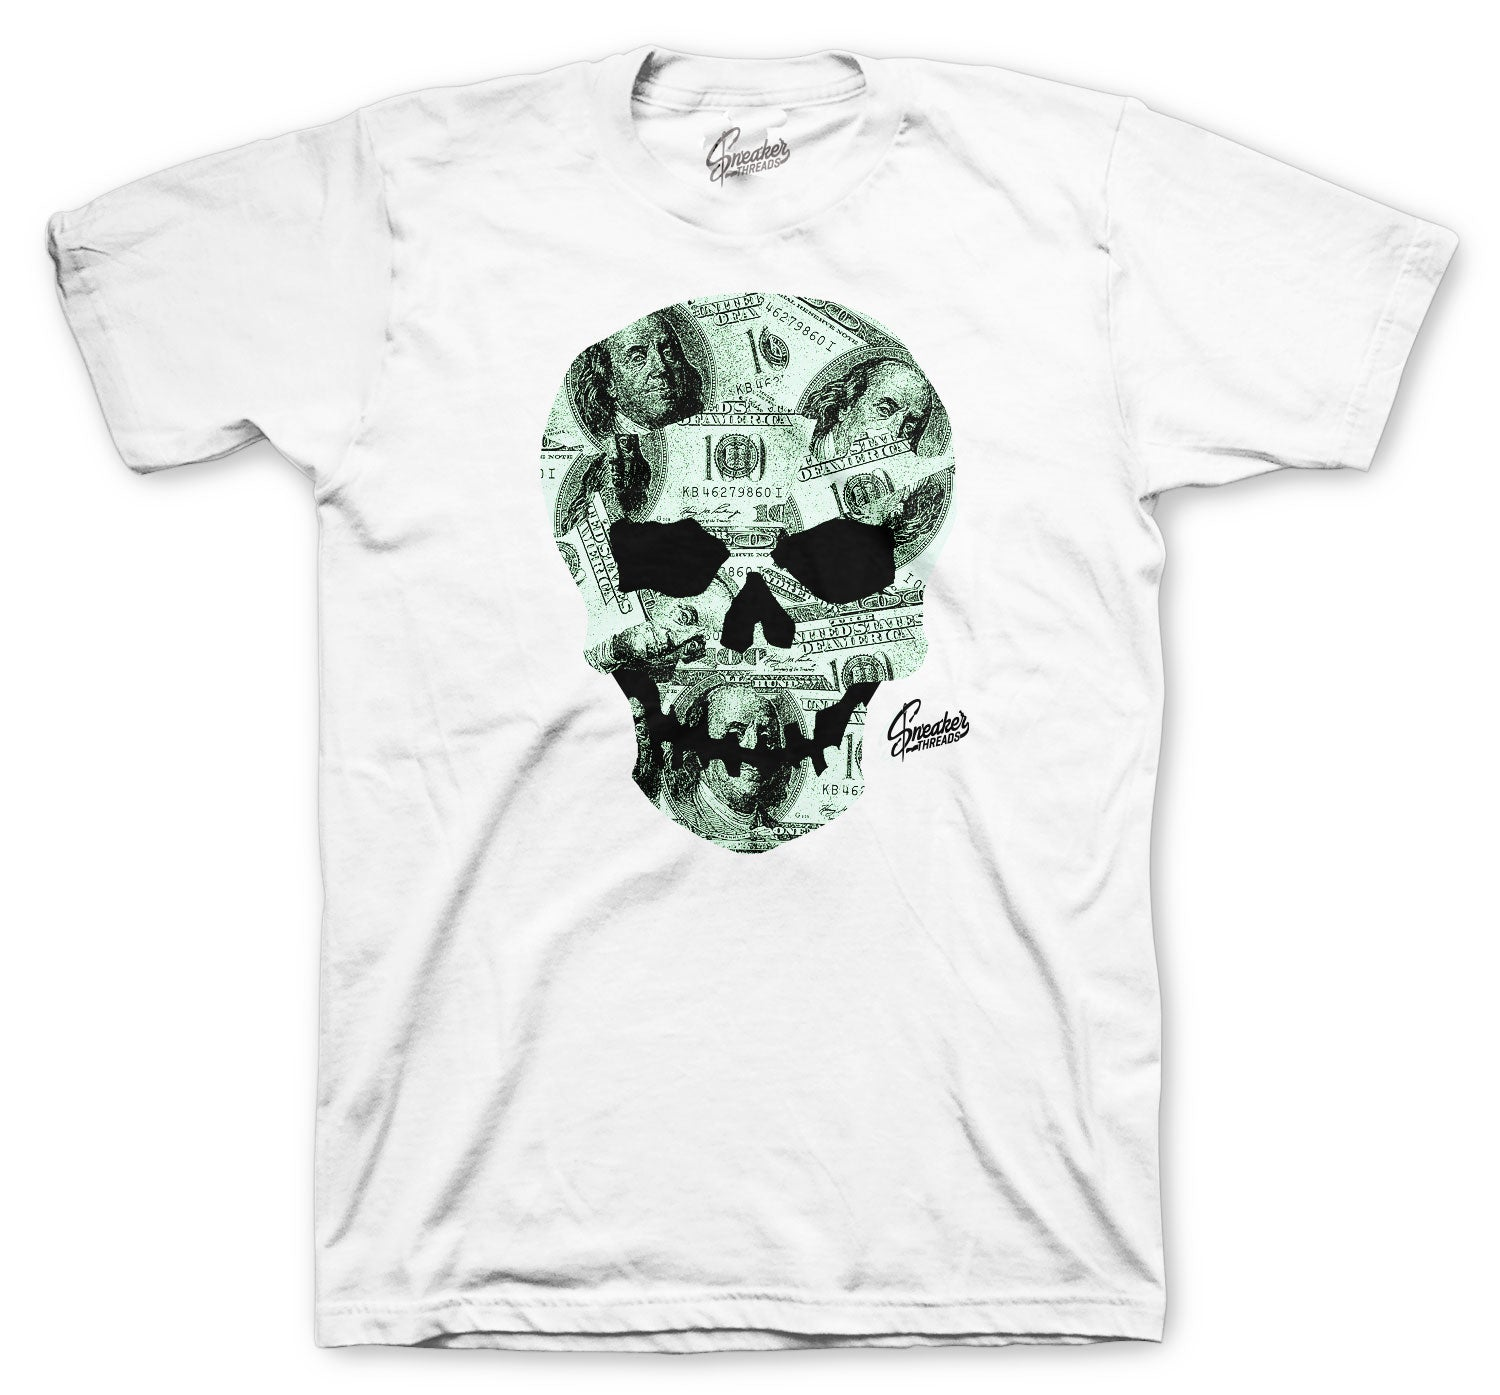 Jordan 12 Easter Shirt - Money Skull - White